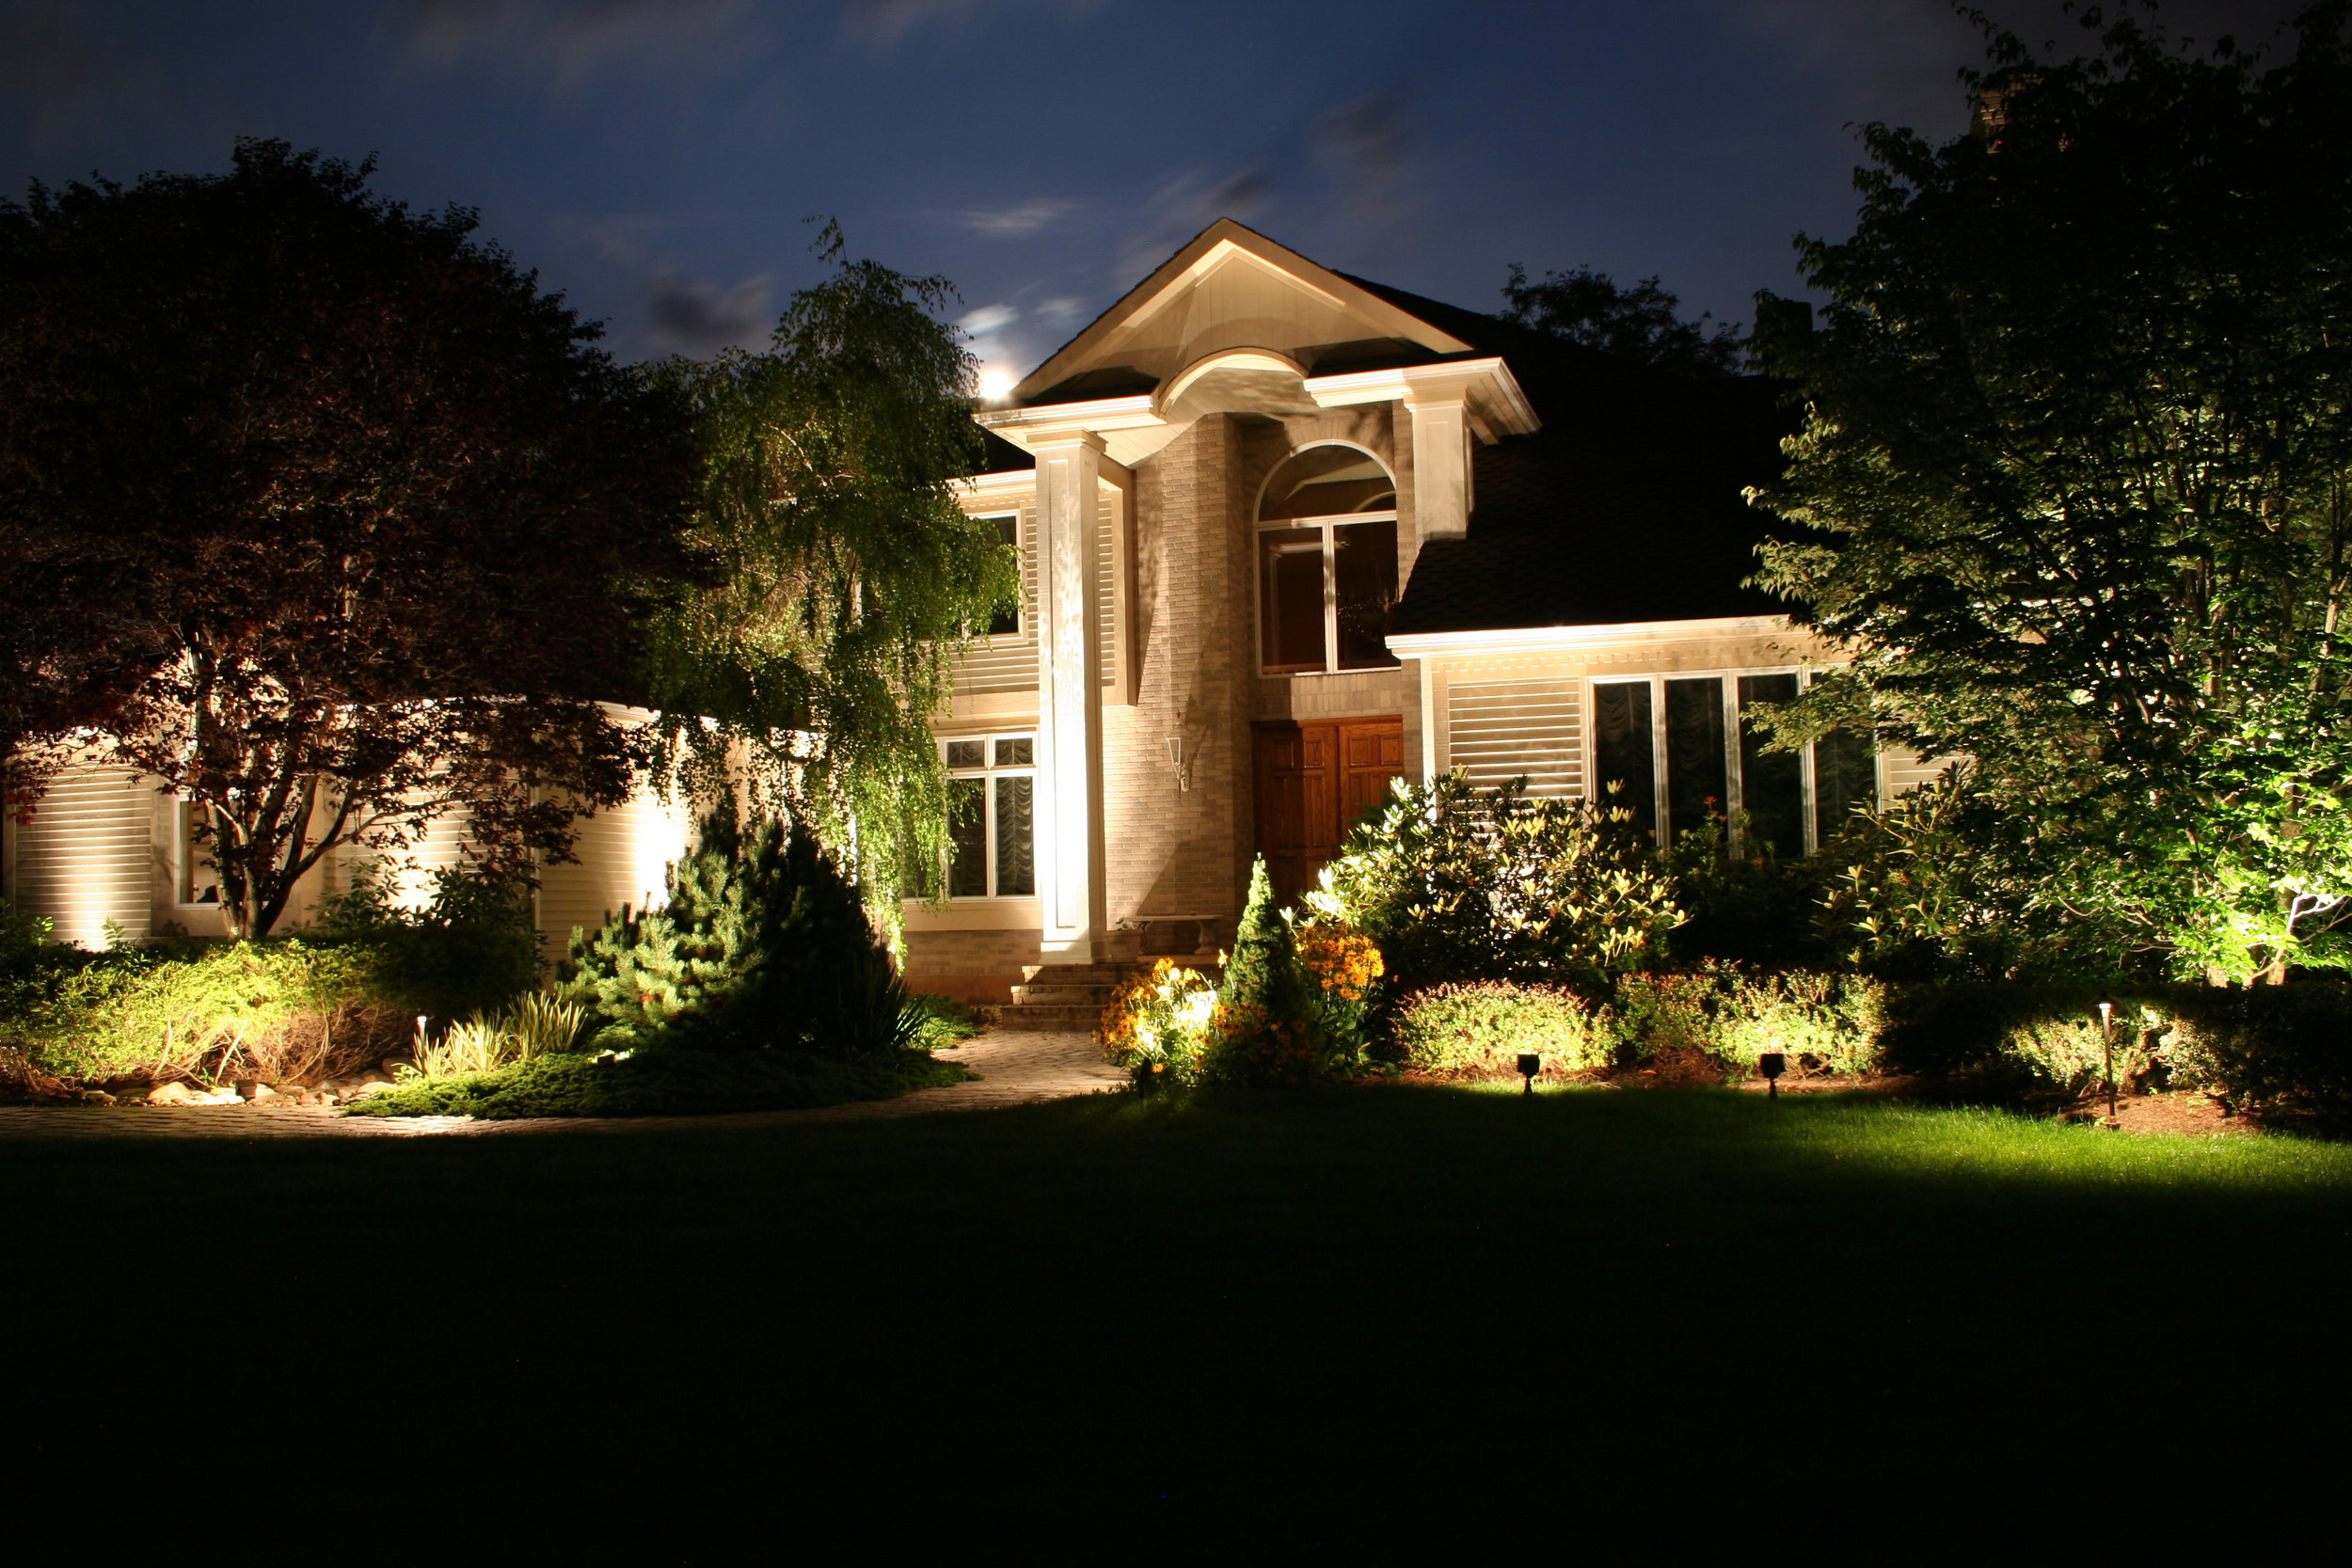 Landscape Lighting Image 2.jpg